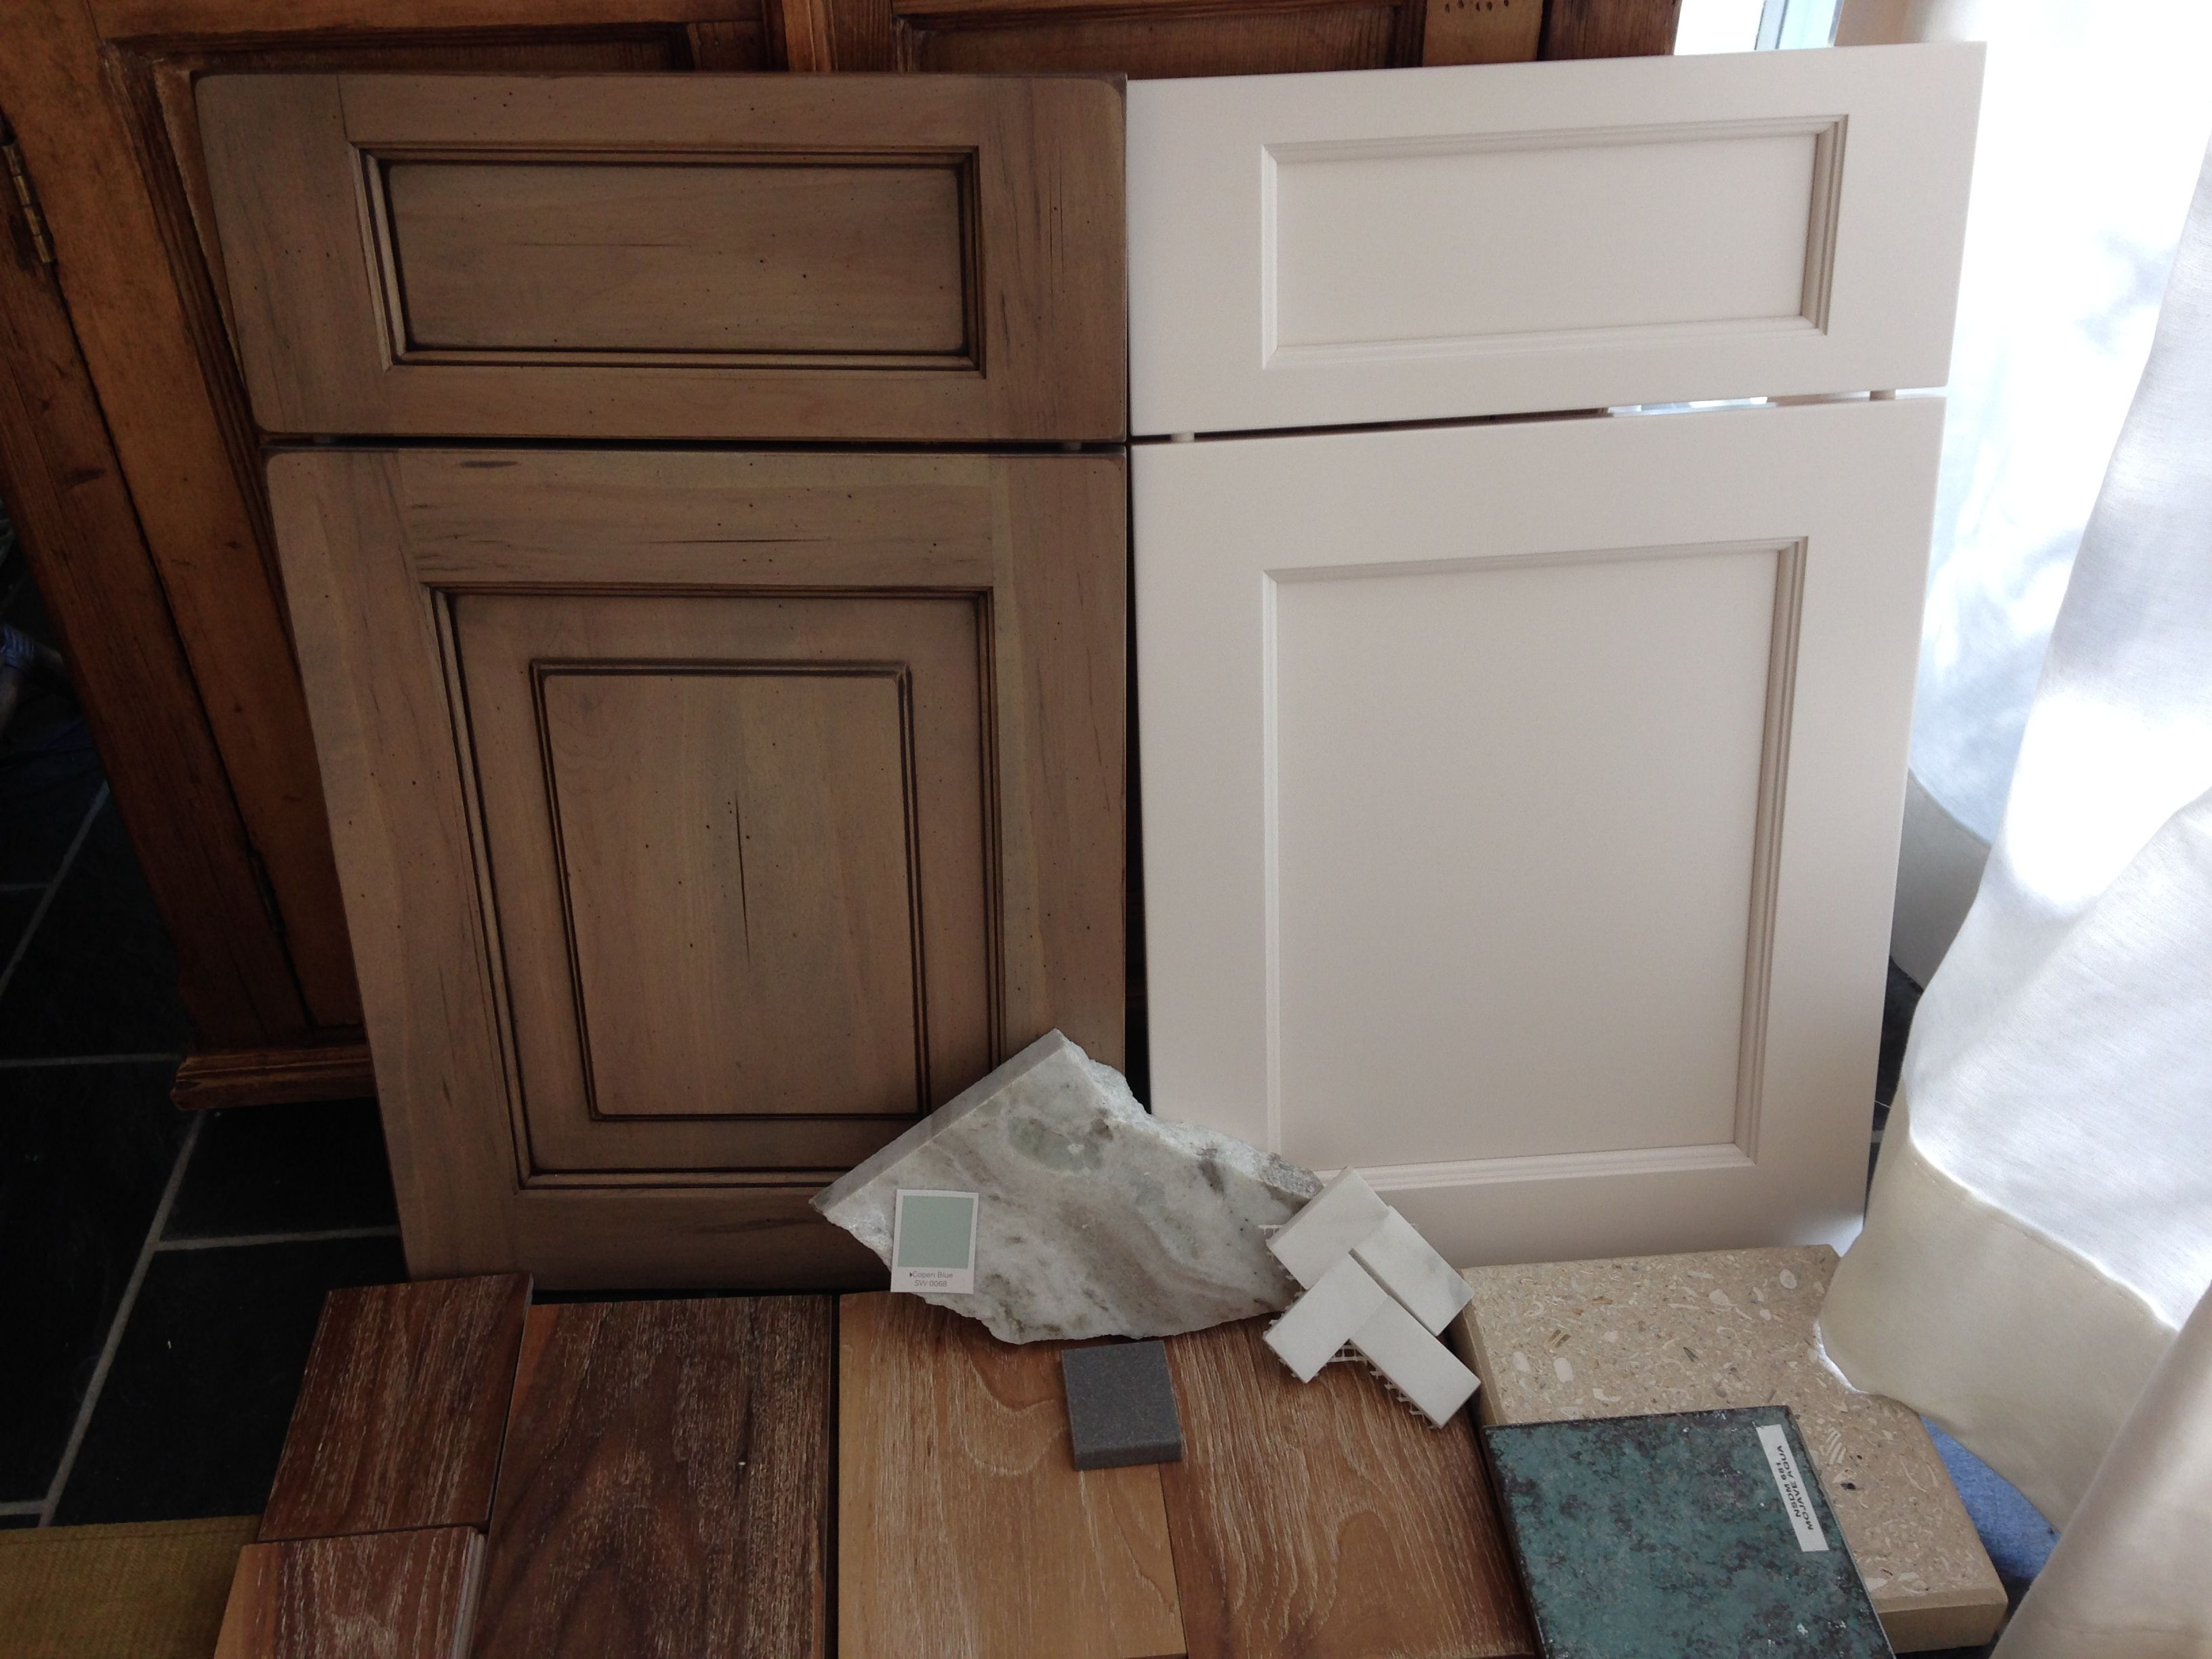 per cumberlanddems cabinets remodel prices linear cost us brookhaven foot kitchen cabinet ikea styles estimate